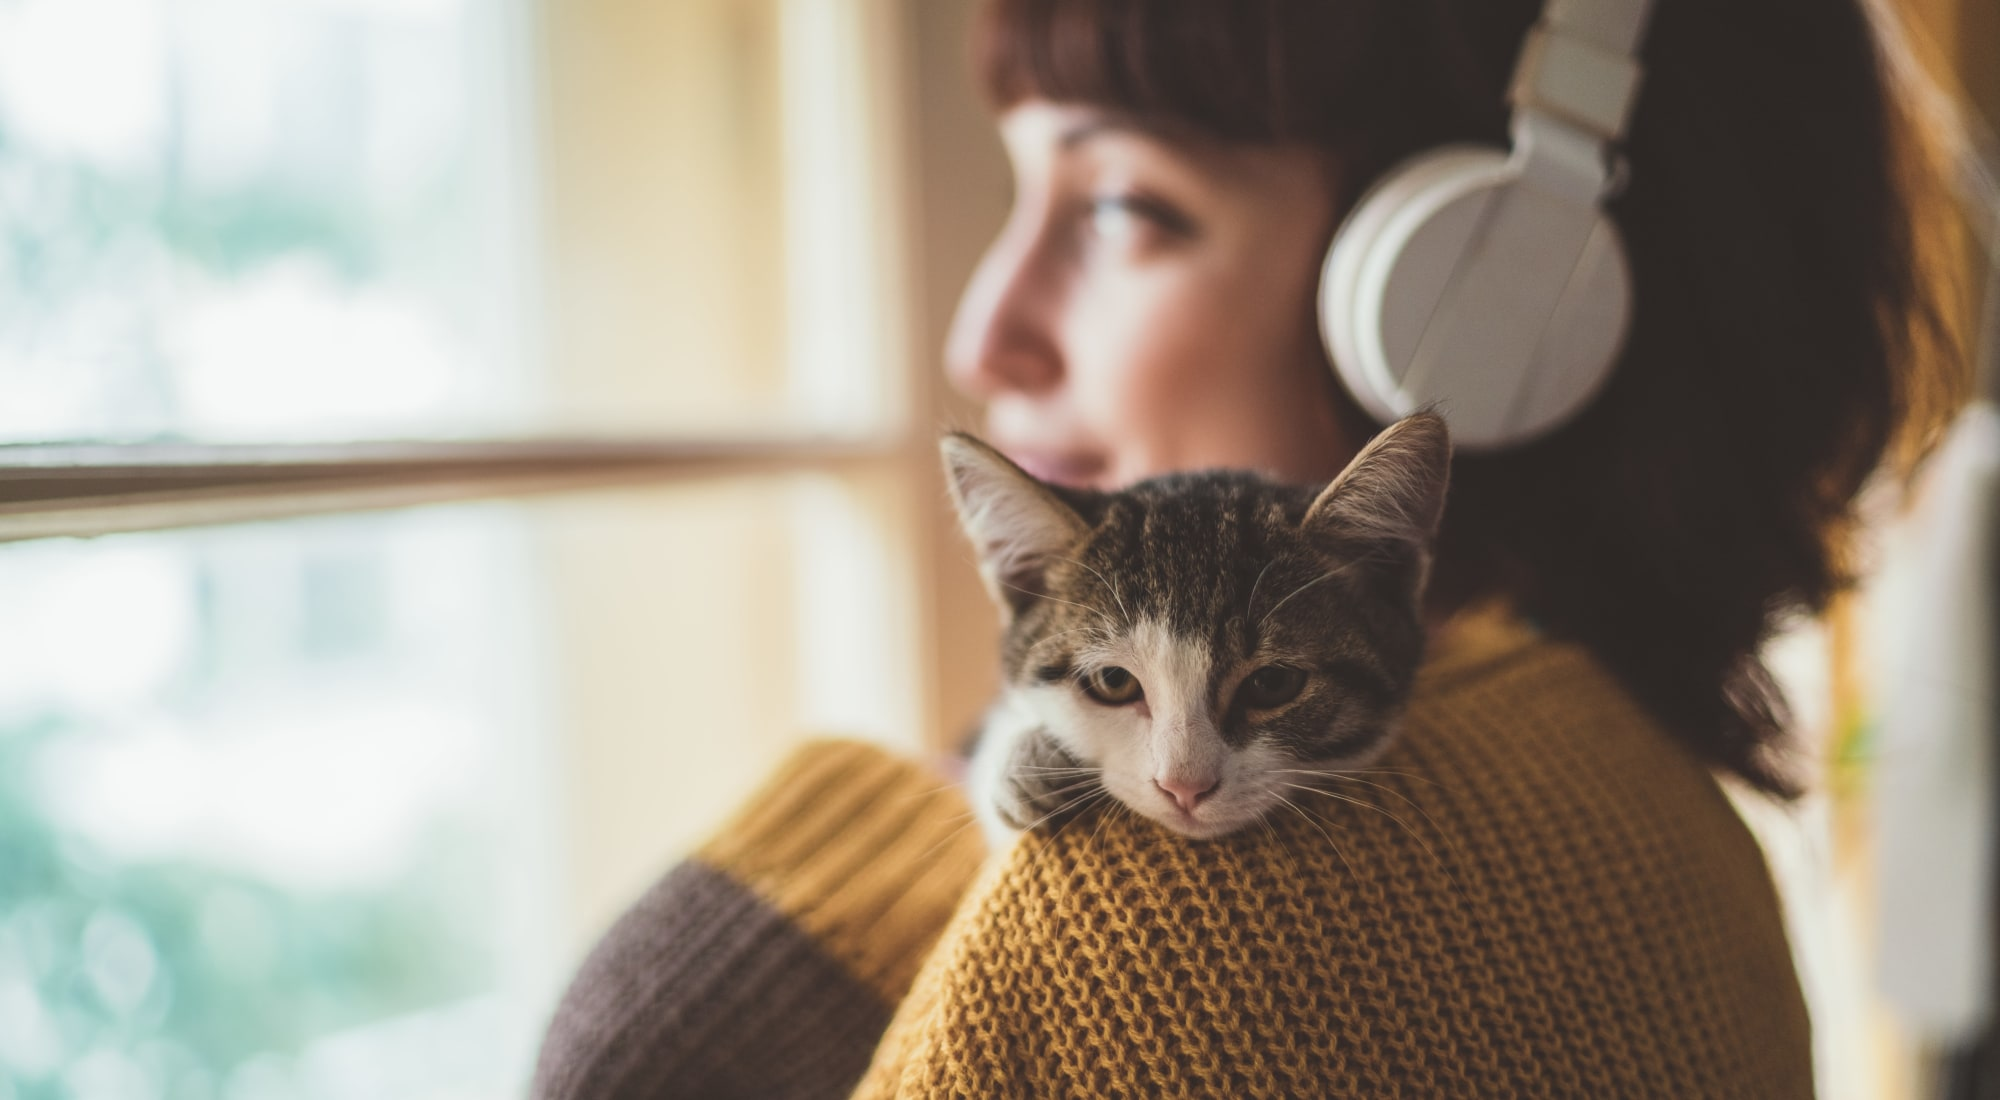 Pet-friendly apartments at The Fairways Apartment Homes in Lee's Summit, Missouri